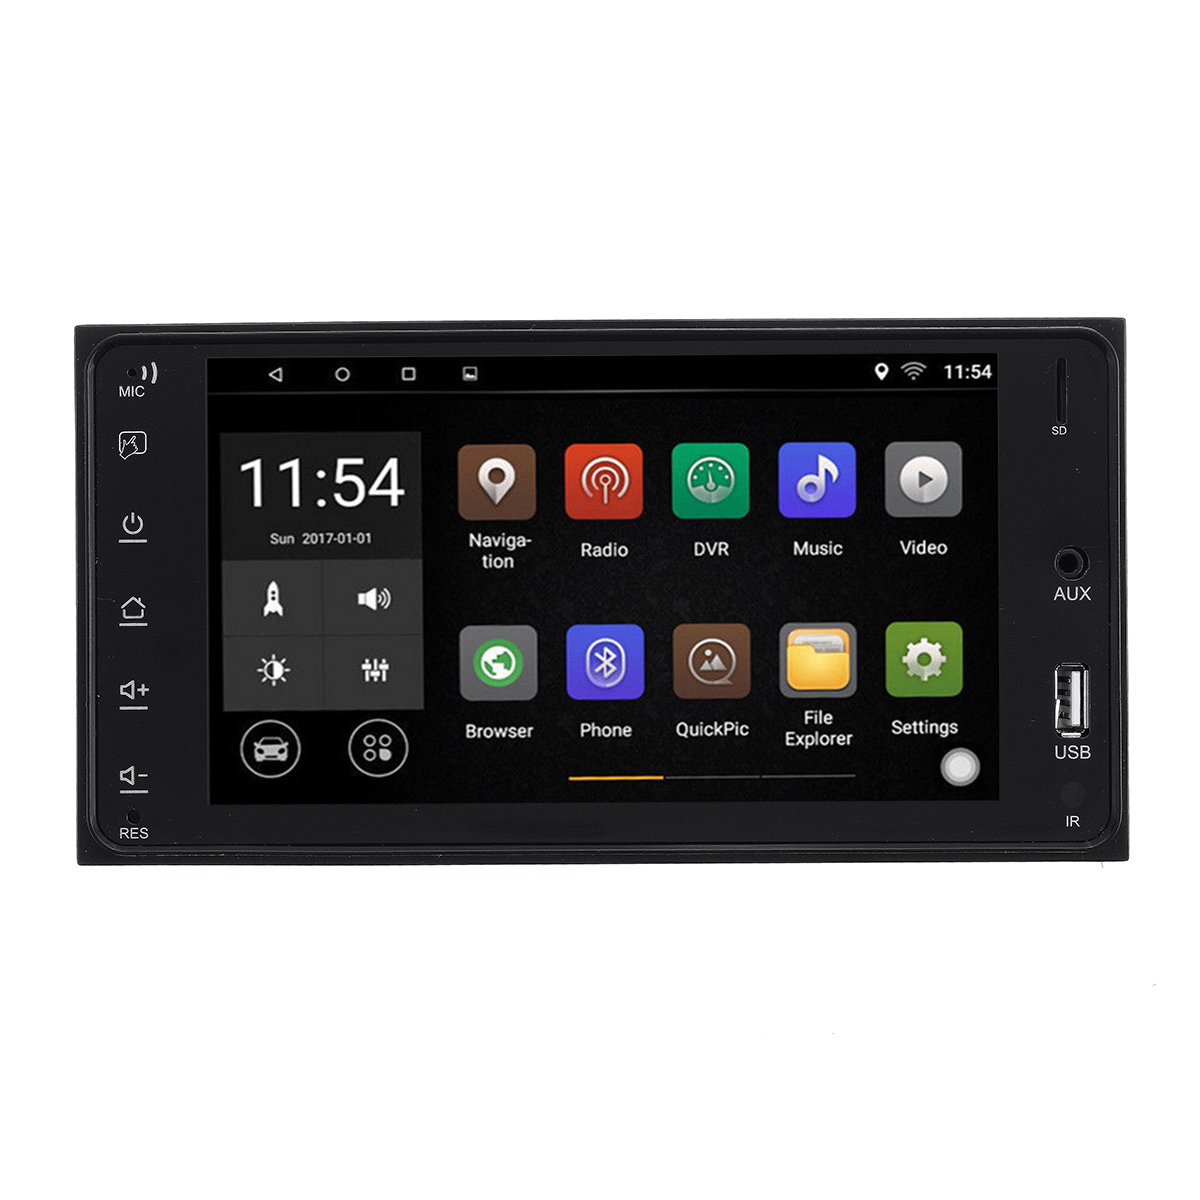 7Inch for Android 8.1 1+16G Car Stereo Radio MP5 Player Quad Core 2DIN 2.5D WIFI bluetooth GPS AM for Toyota Corolla